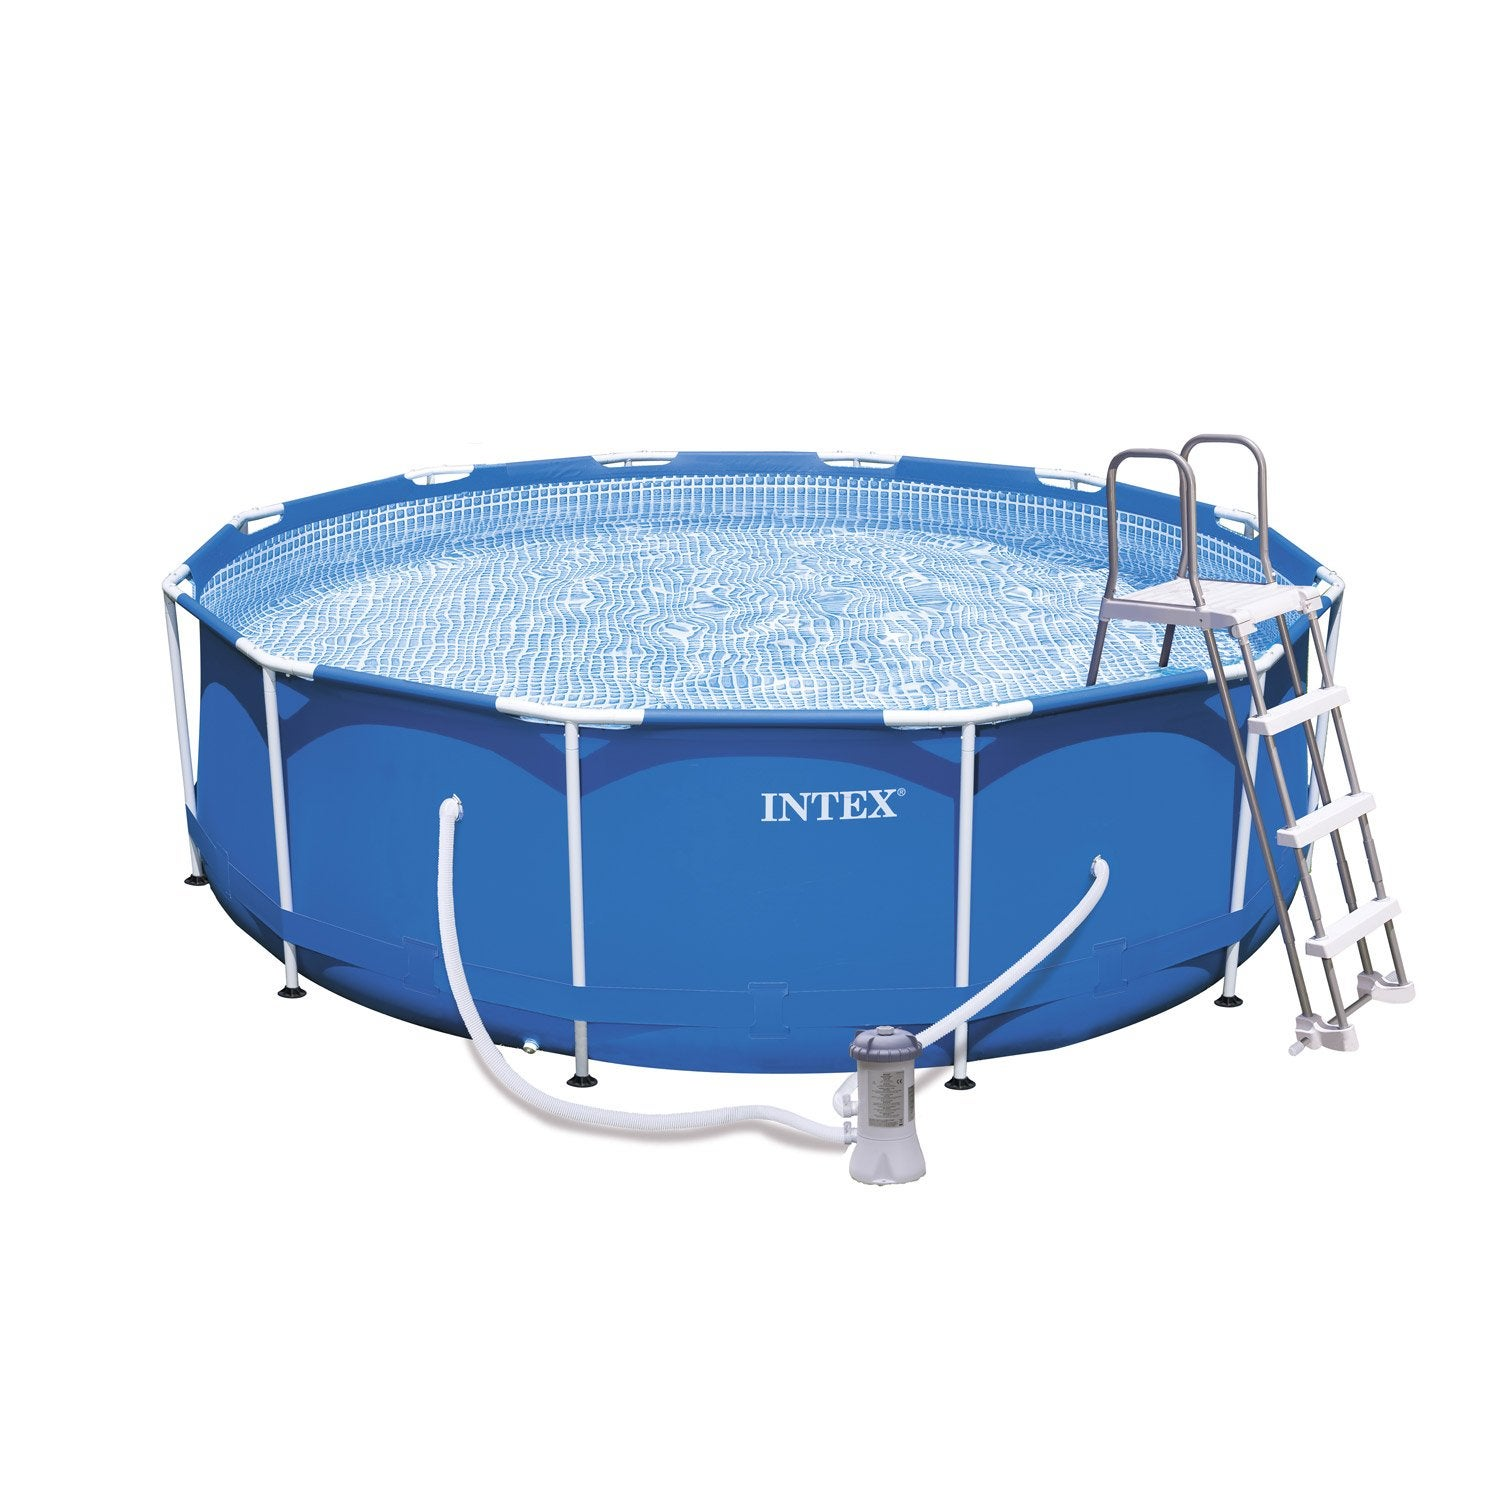 Piscine hors sol autoportante tubulaire m tal frame intex for Margelle piscine hors sol leroy merlin